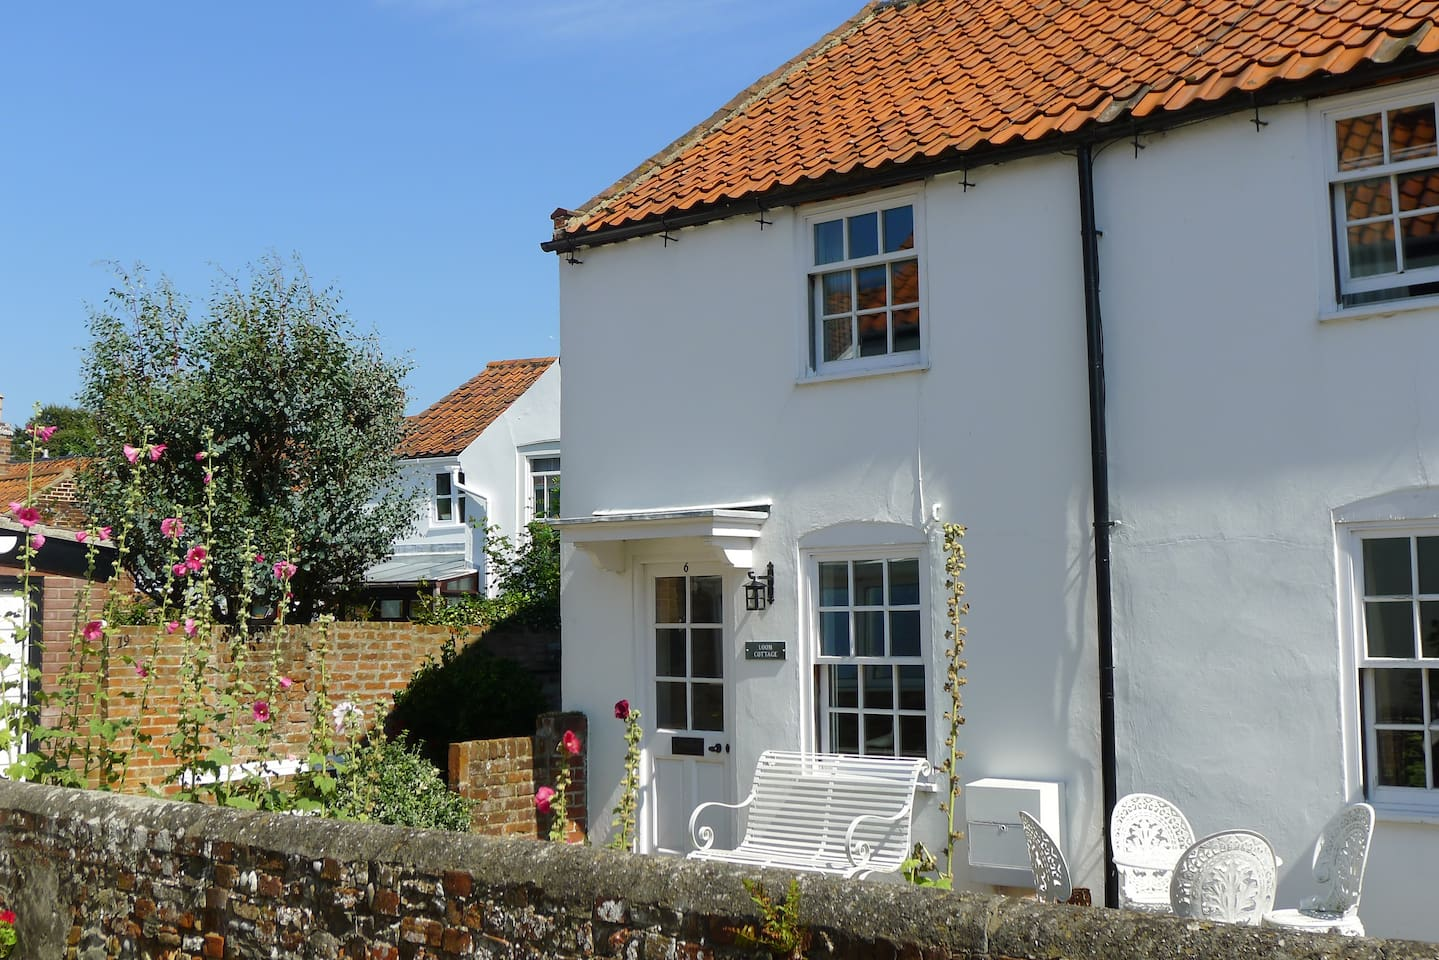 Loom Cottage  Self catering Holiday Let, sleeps 4 (there is also a sofa bed) 2 bedrooms, central Southwold with use of a garage.